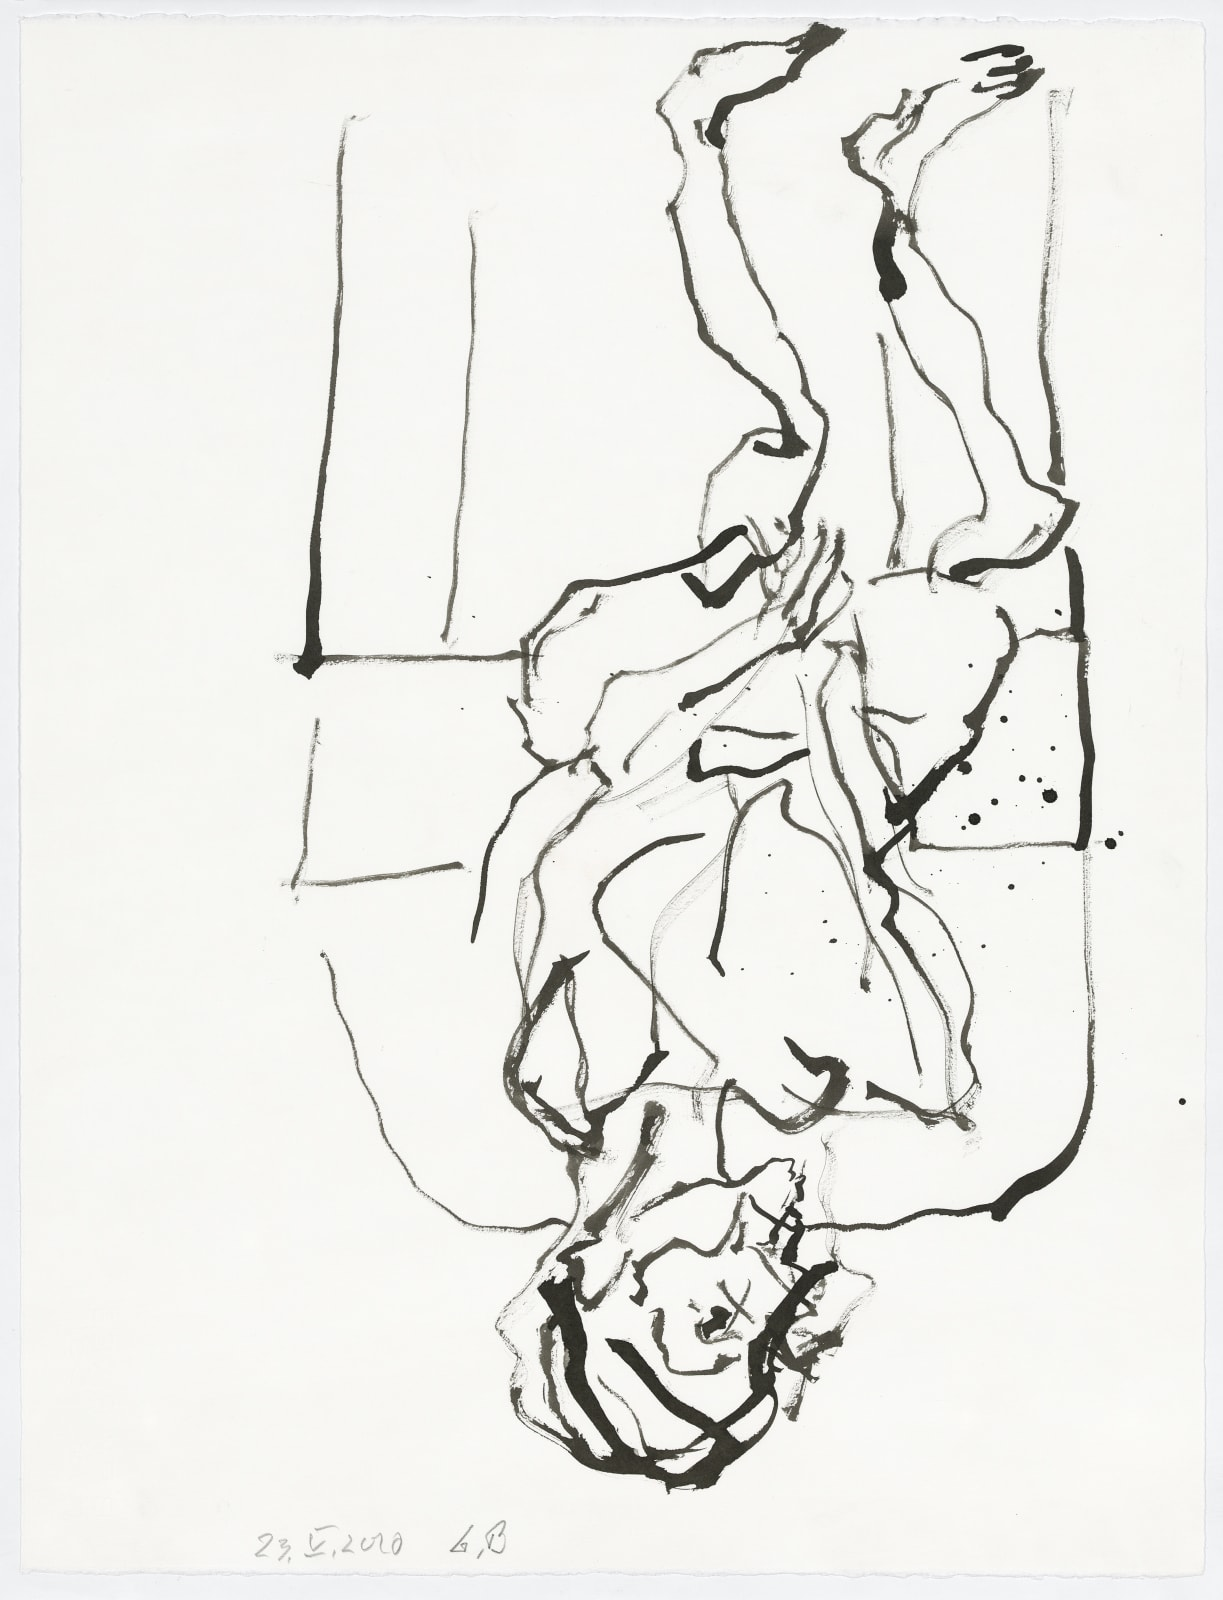 """<a href=""""/content/feature/630/detail/artworks12501/"""" class=""""pageload-link-type-popup-enabled-content""""><div class=""""artist"""">Georg Baselitz</div><div class=""""title_and_year""""><span class=""""title"""">Untitled</span><span class=""""year"""">, 2020</span></div><div class=""""medium"""">India ink on paper</div><div class=""""dimensions"""">66.2 x 50 cm (26.1 x 19.7 inches)</div></a>"""